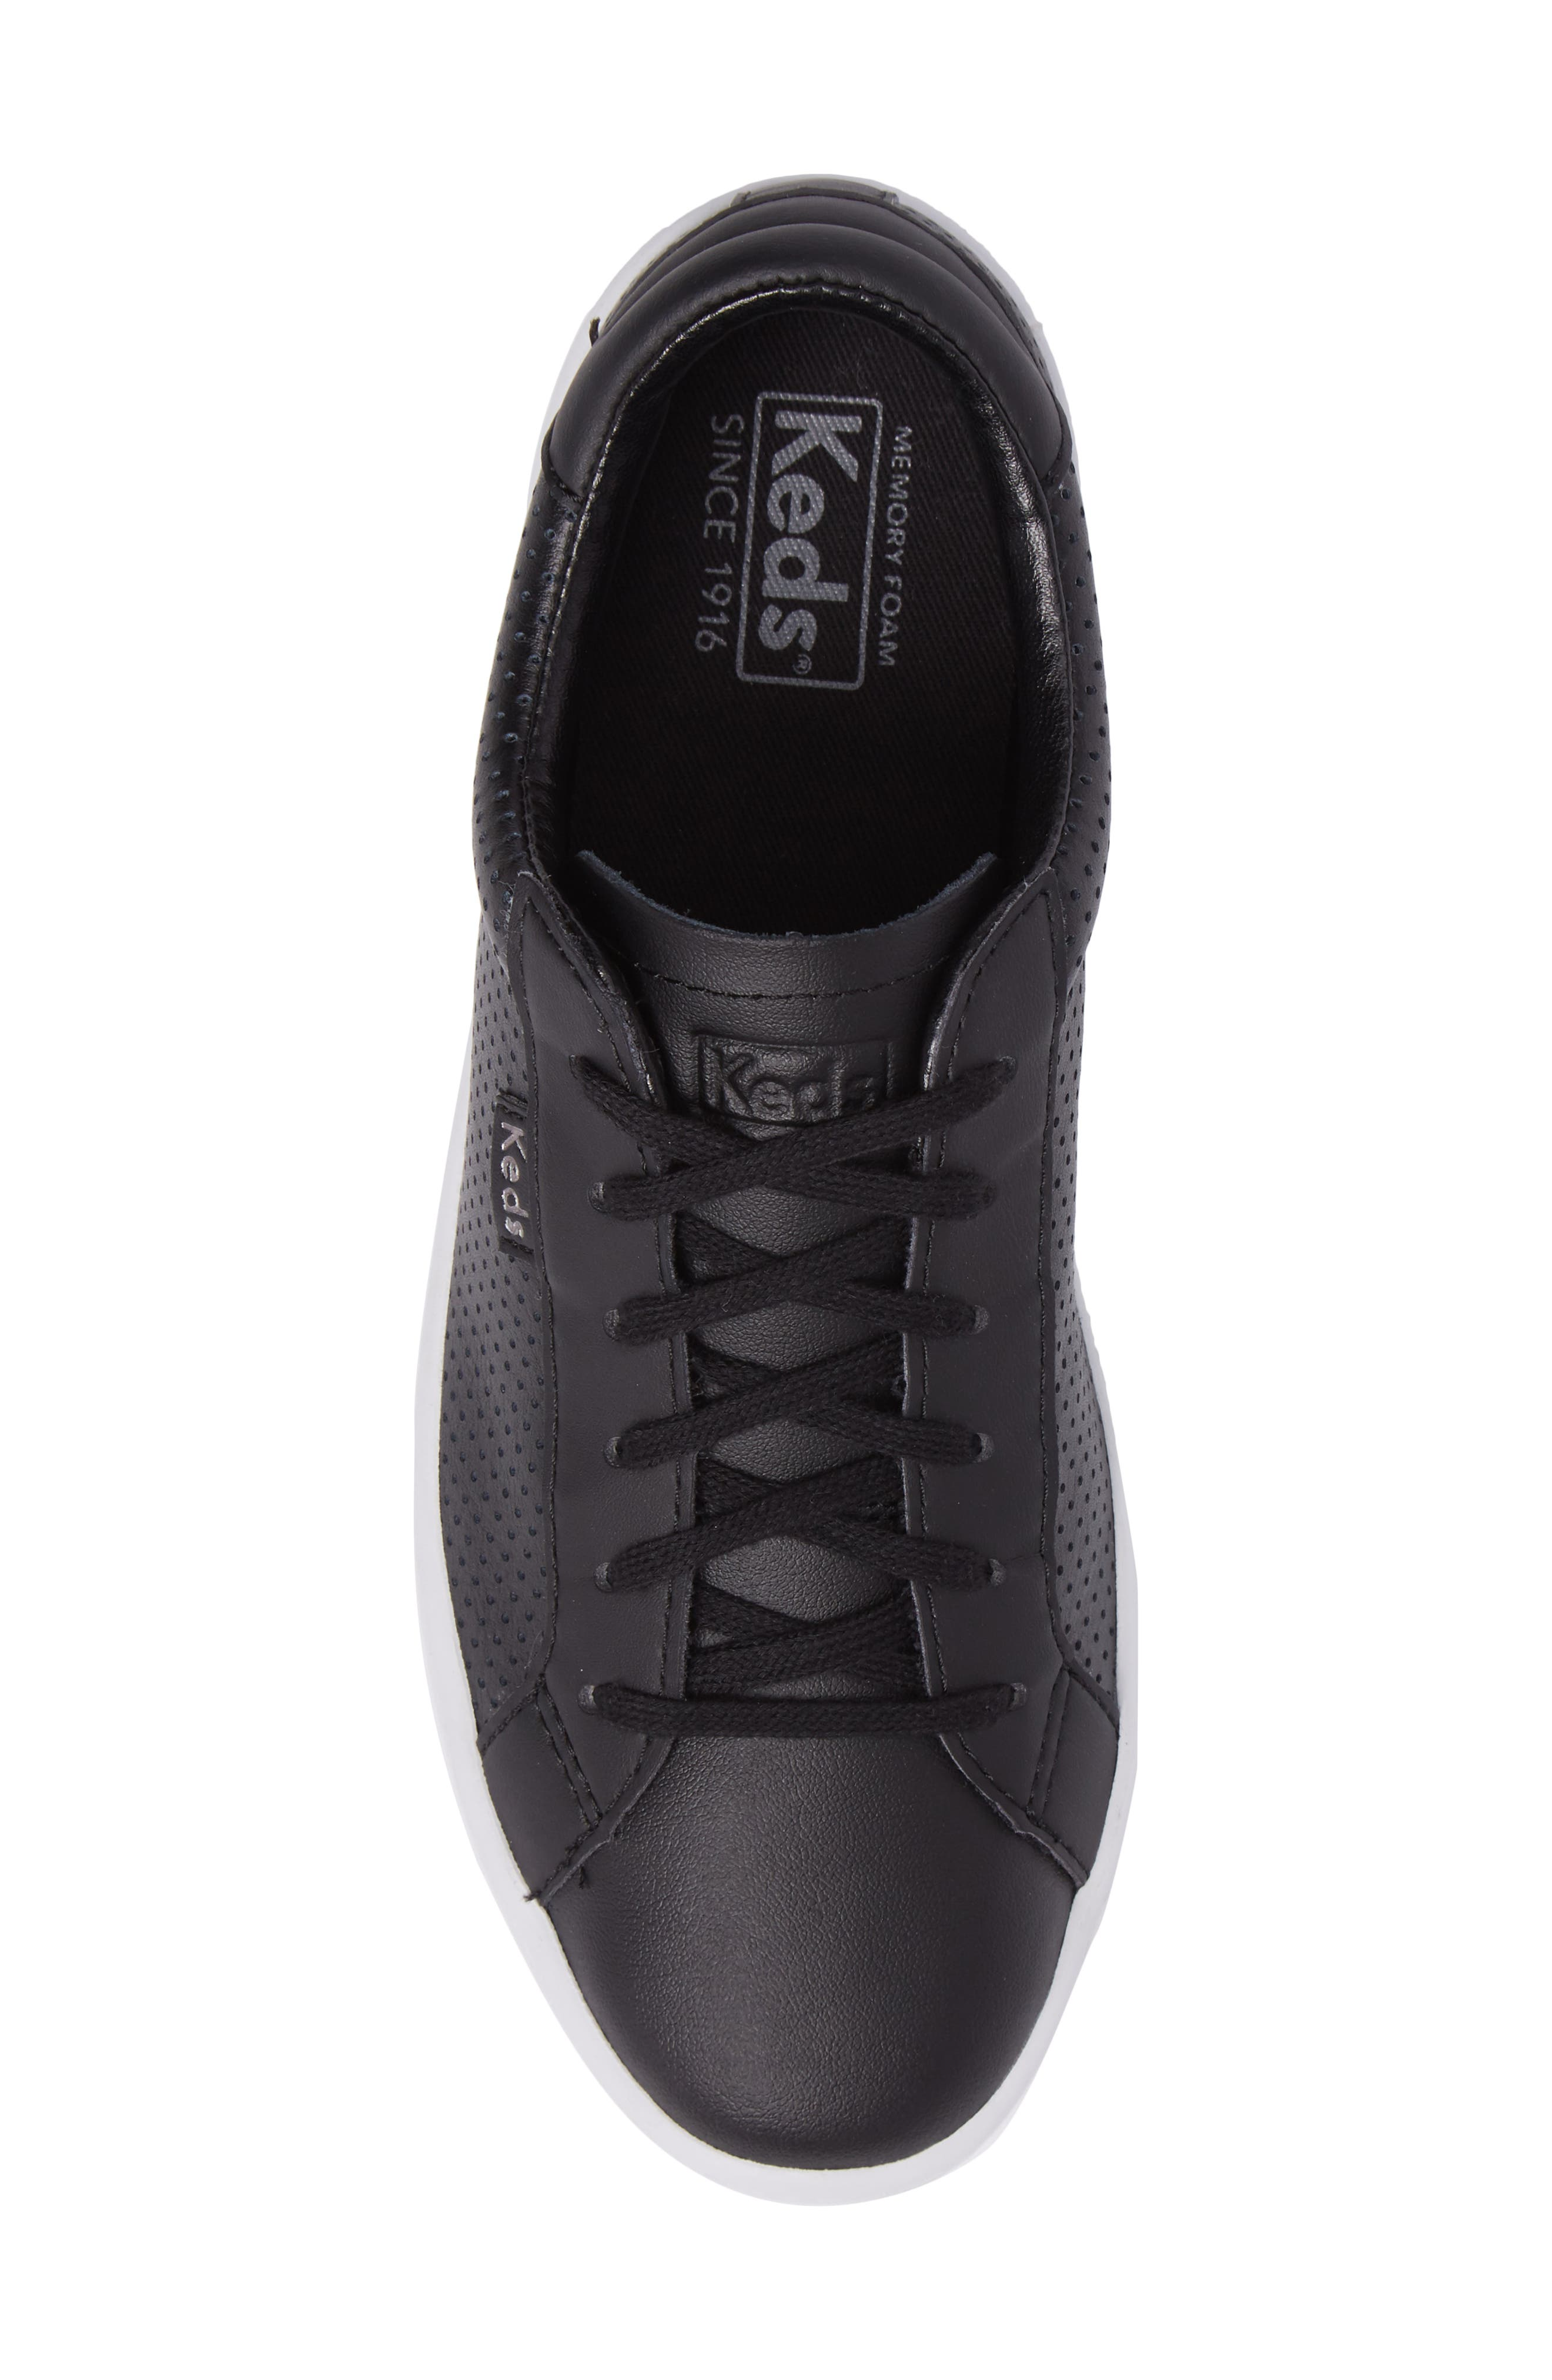 Ace Perforated Low Top Sneaker,                             Alternate thumbnail 5, color,                             001